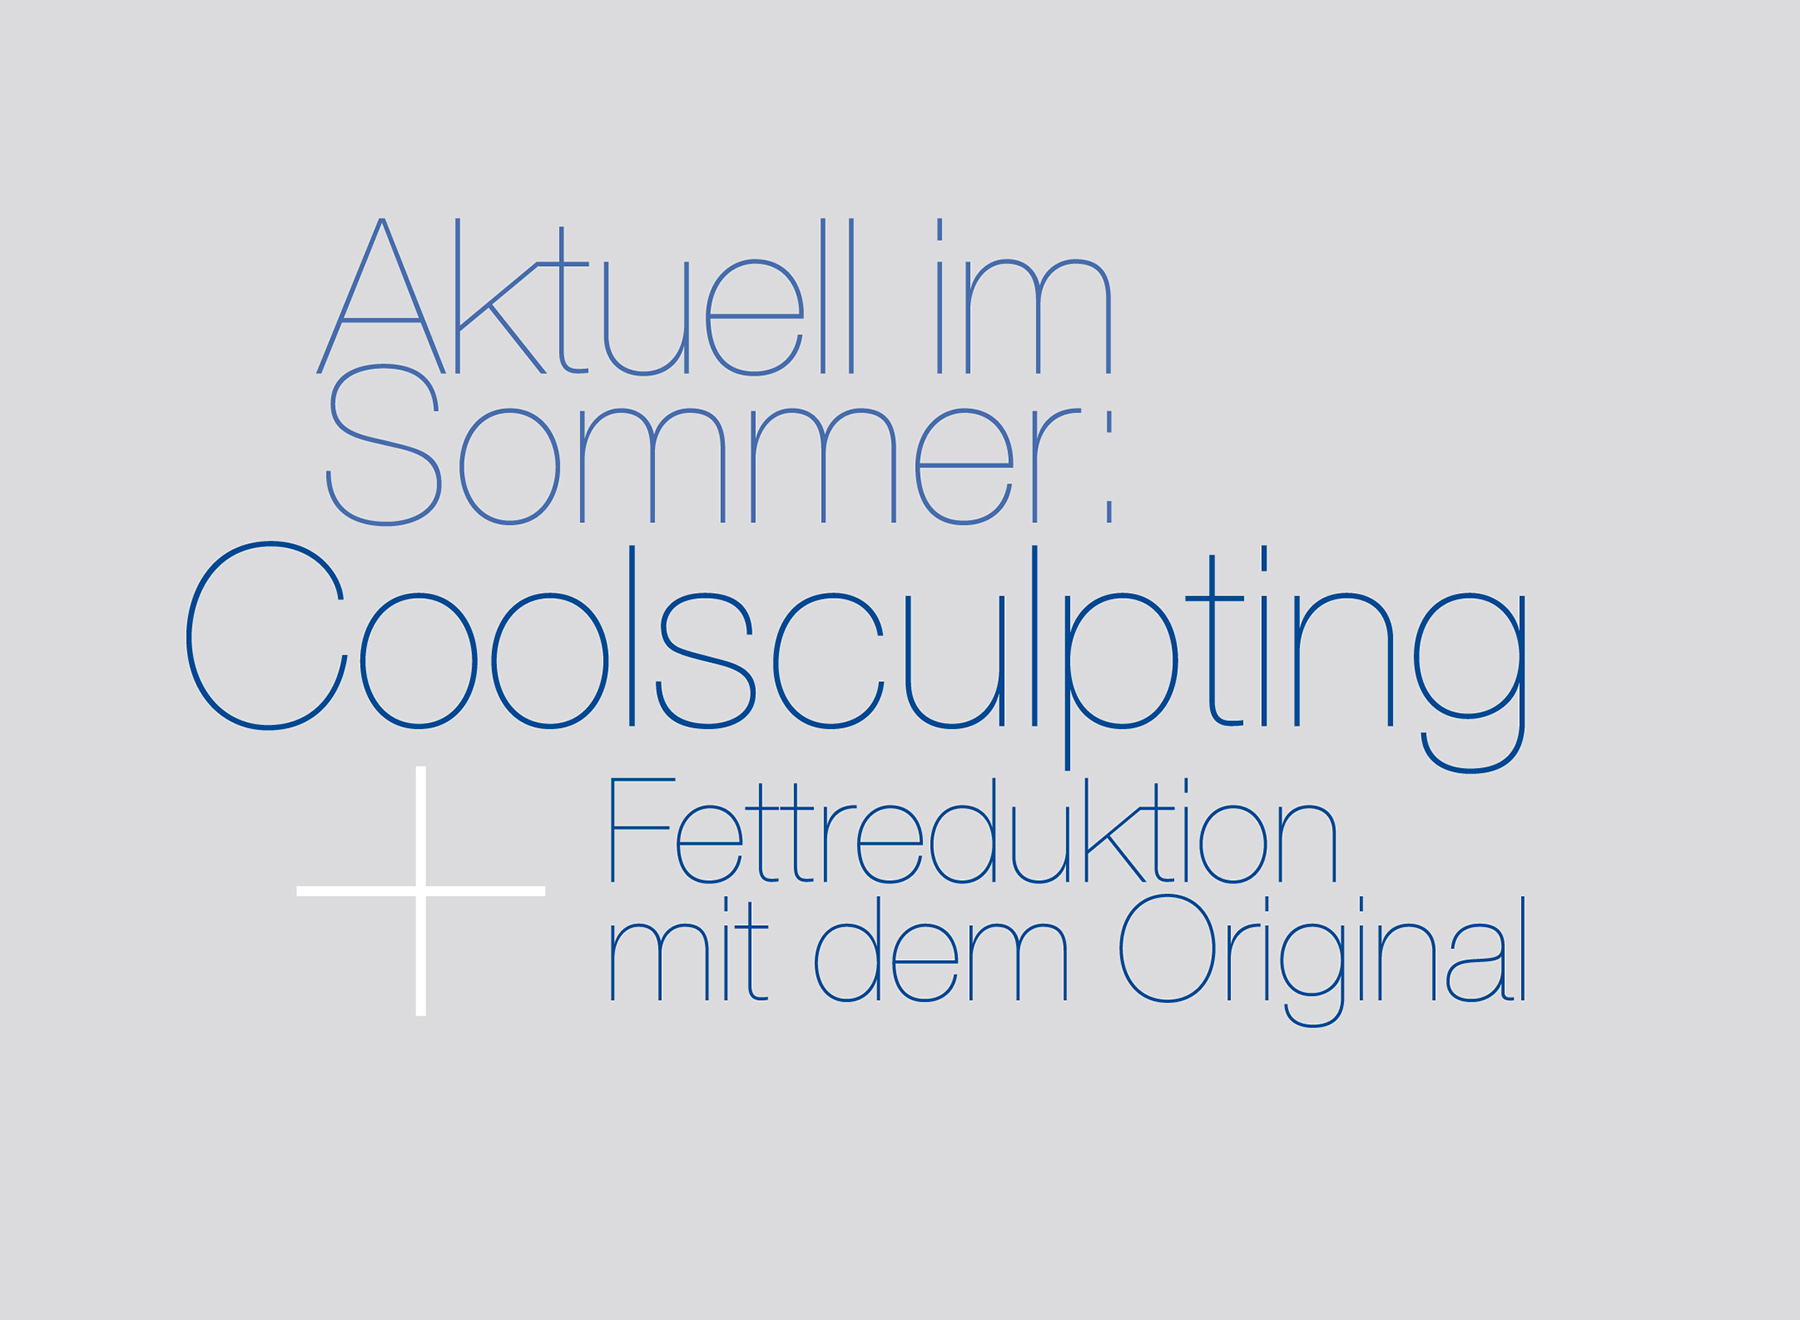 coolsculpting_1800.jpg